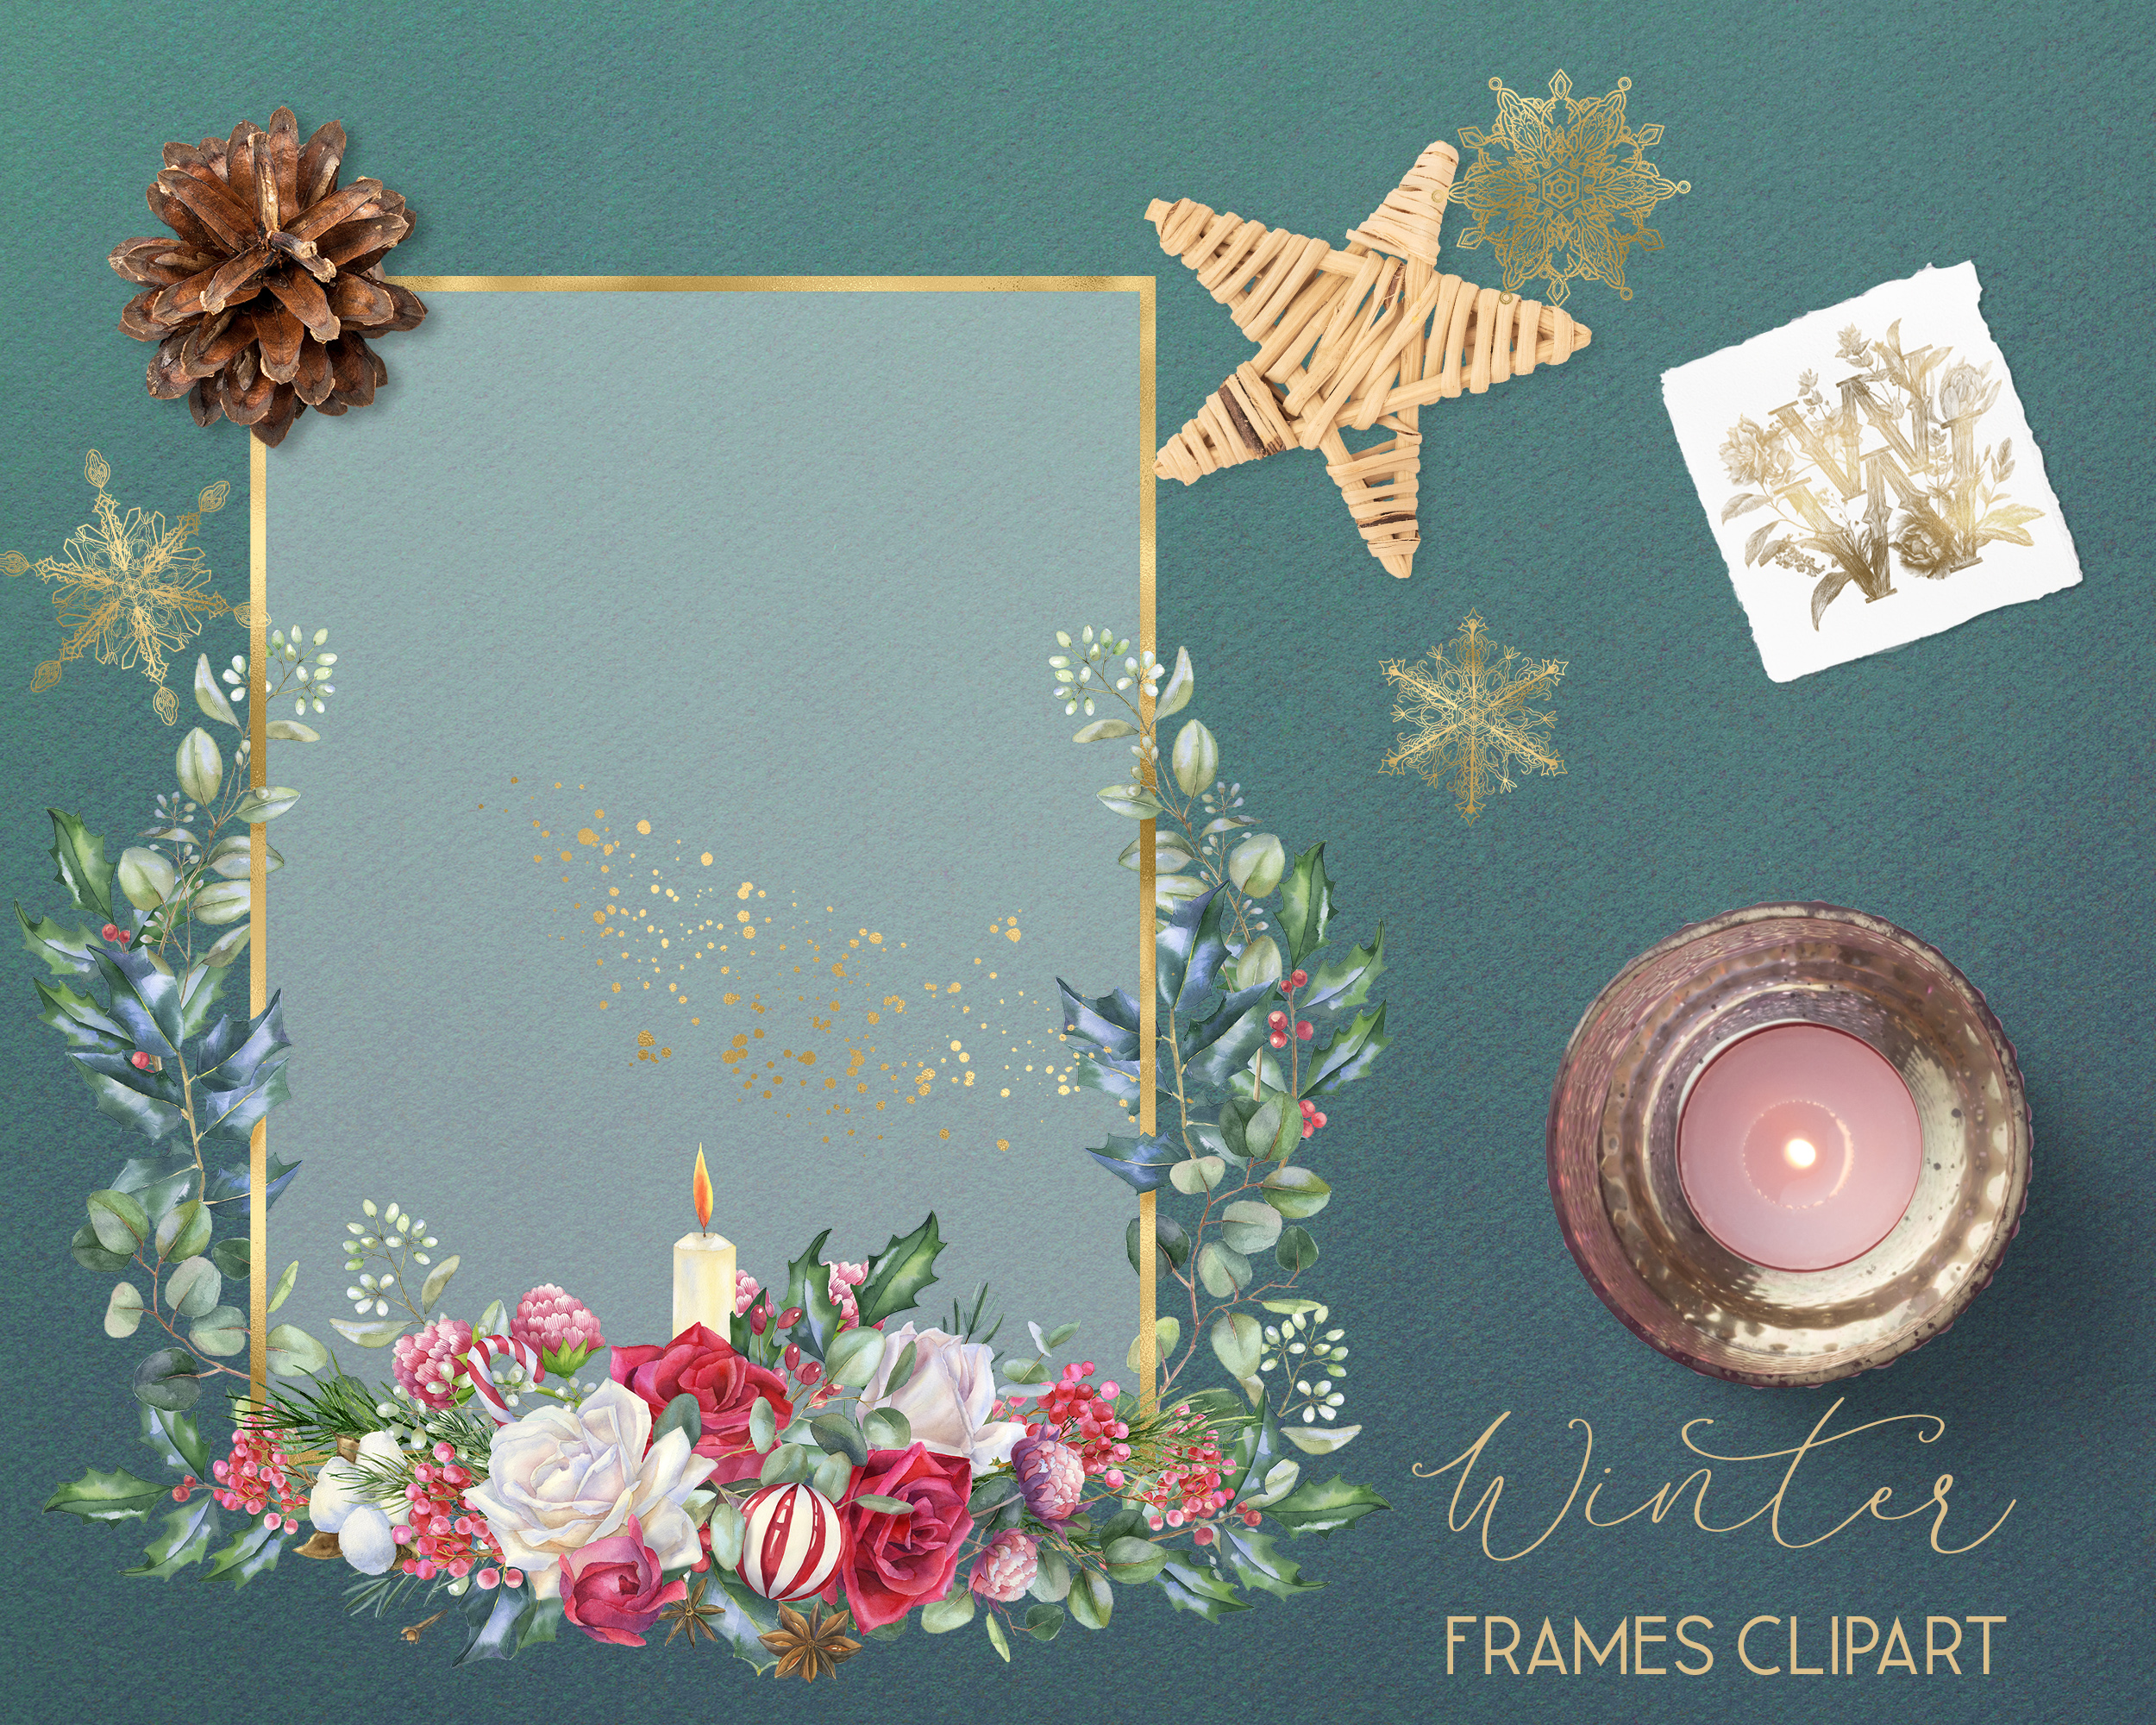 Winter frames clipart, watercolor Christmas borders png example image 9